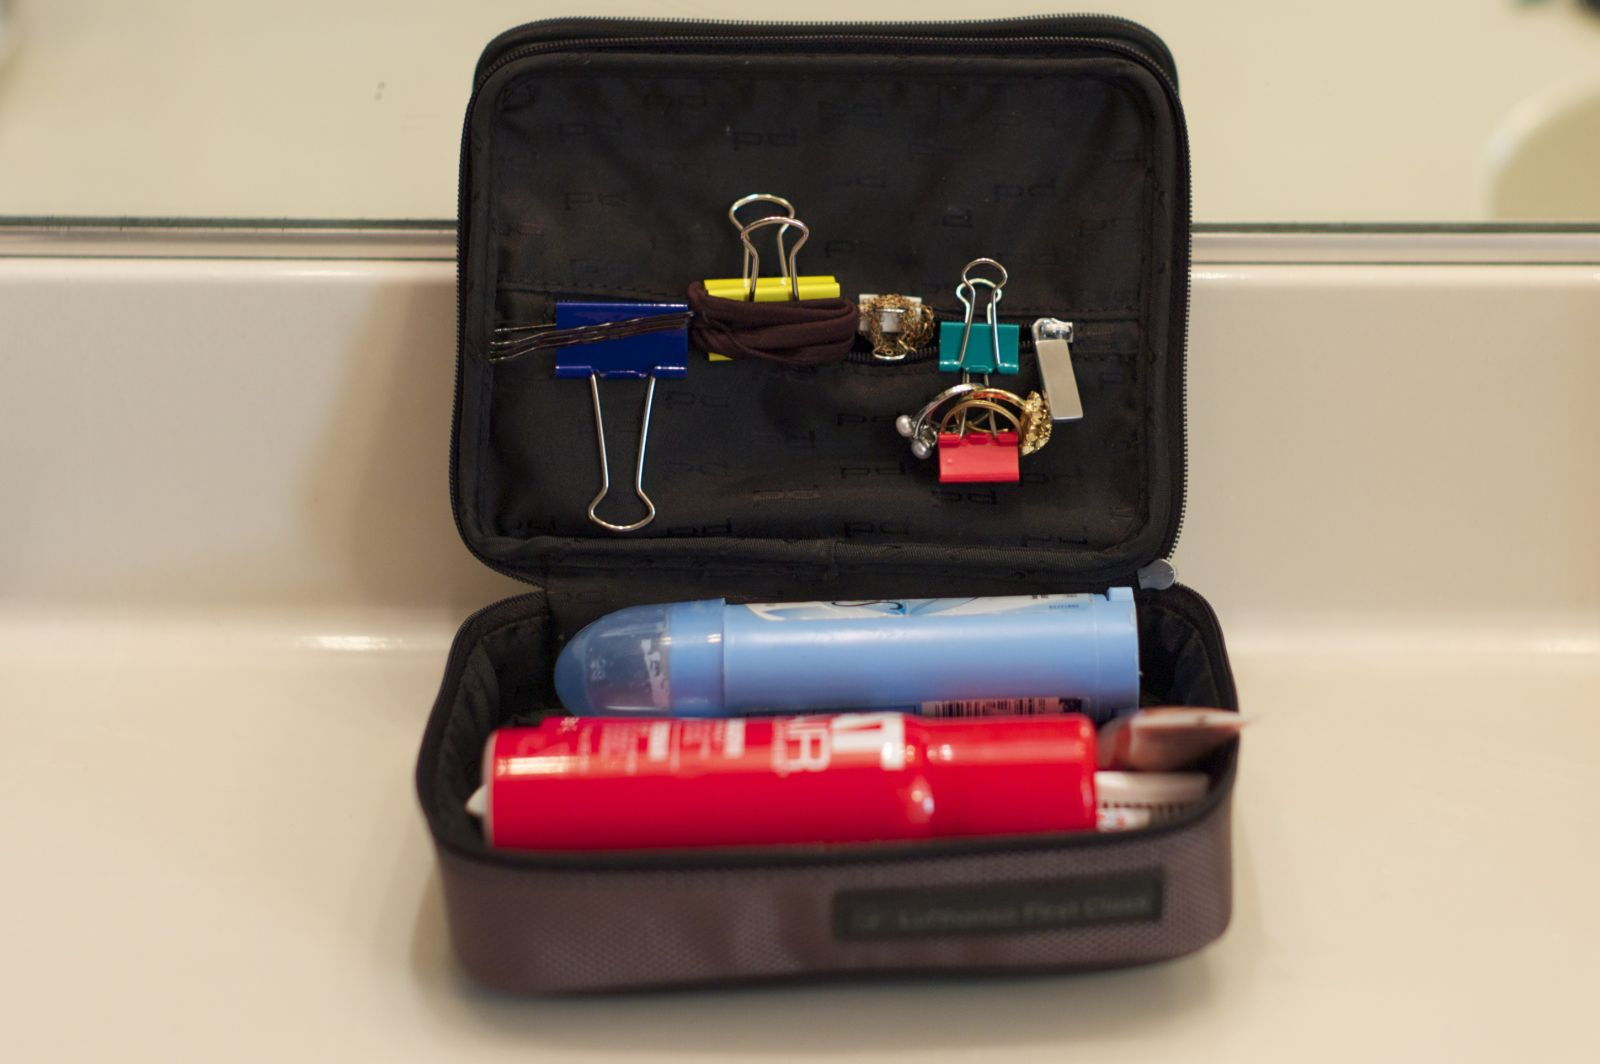 Attach binder clips to the inside of a travel bag to organize your accessories while travelling